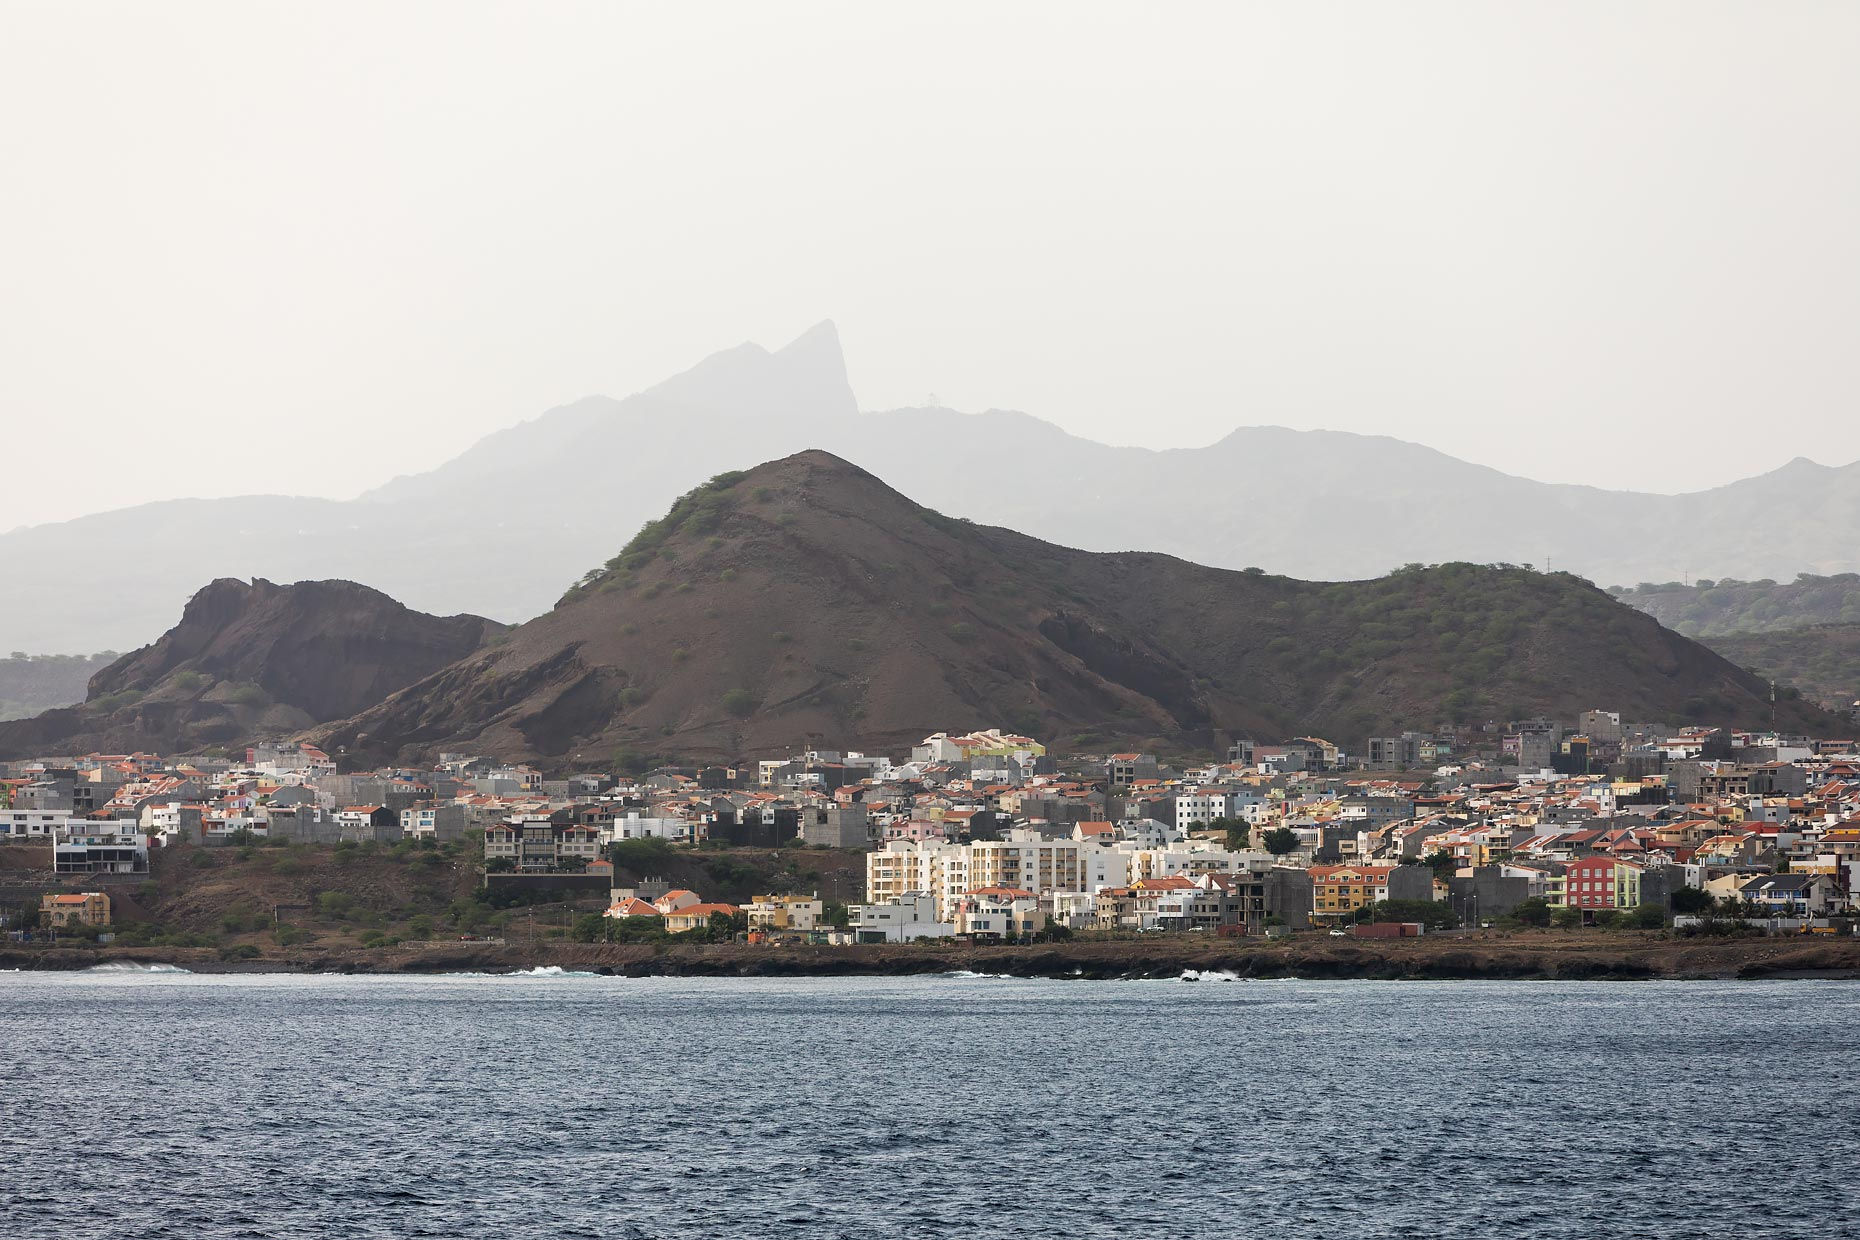 Travel Photography + Multimedia │Santiago Island, Cape Verde